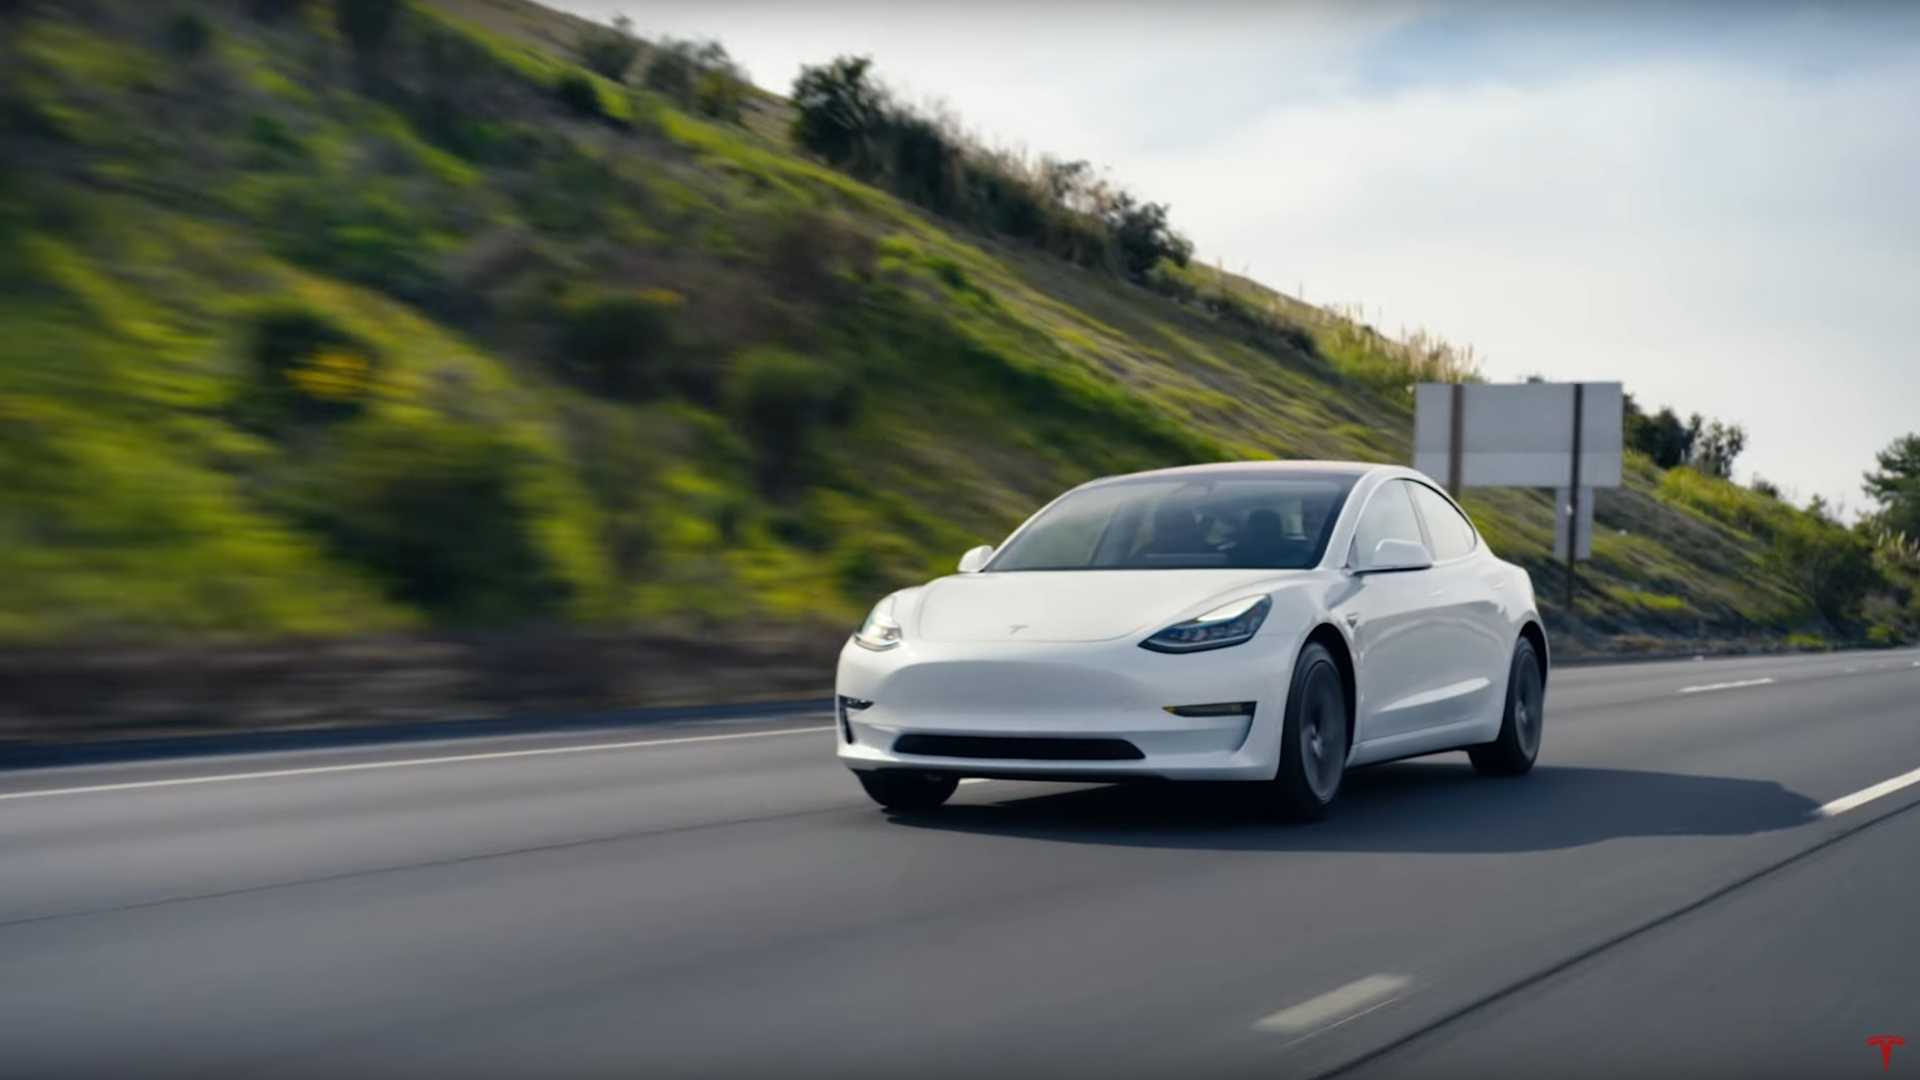 New 'Tesla Centers' Expected To Improve Tesla Delivery Capacity